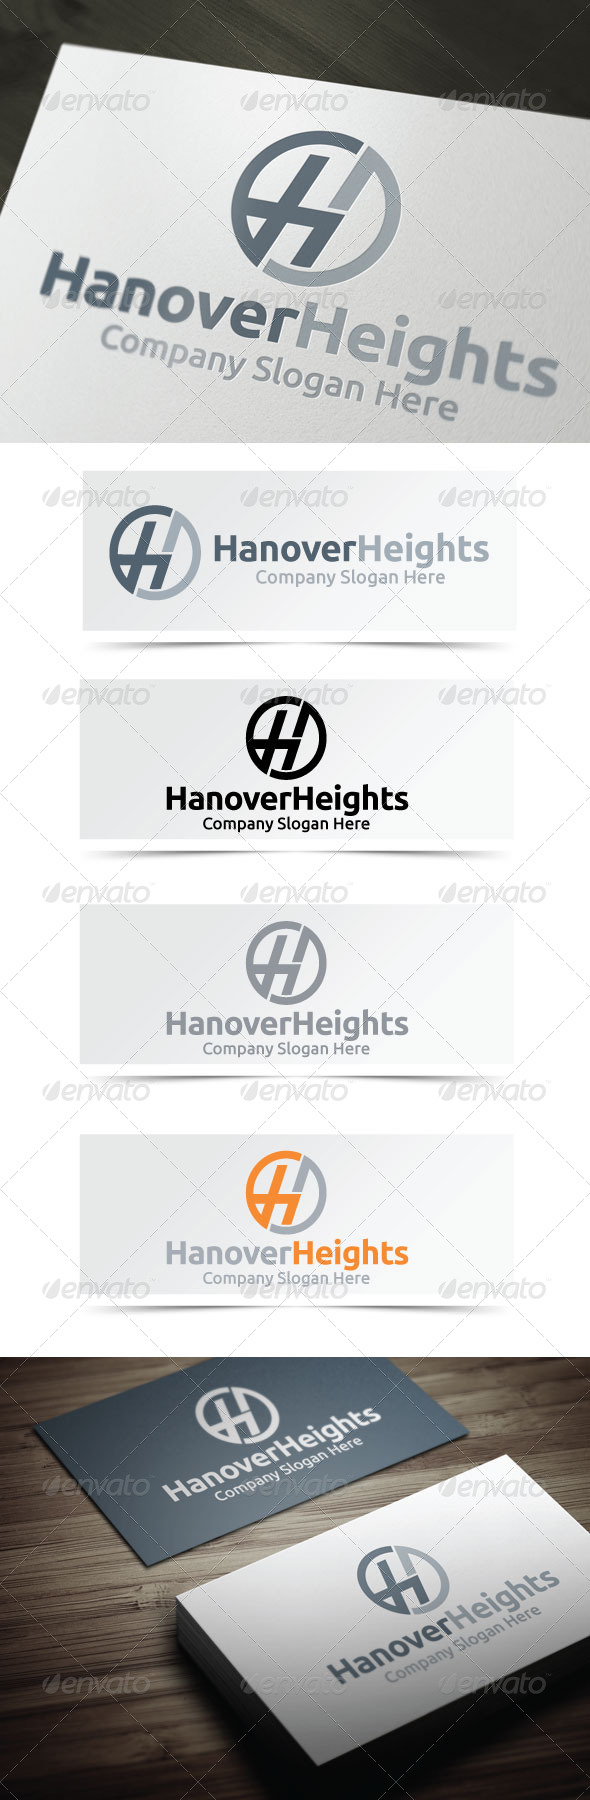 GraphicRiver Hanover Heights 4135197